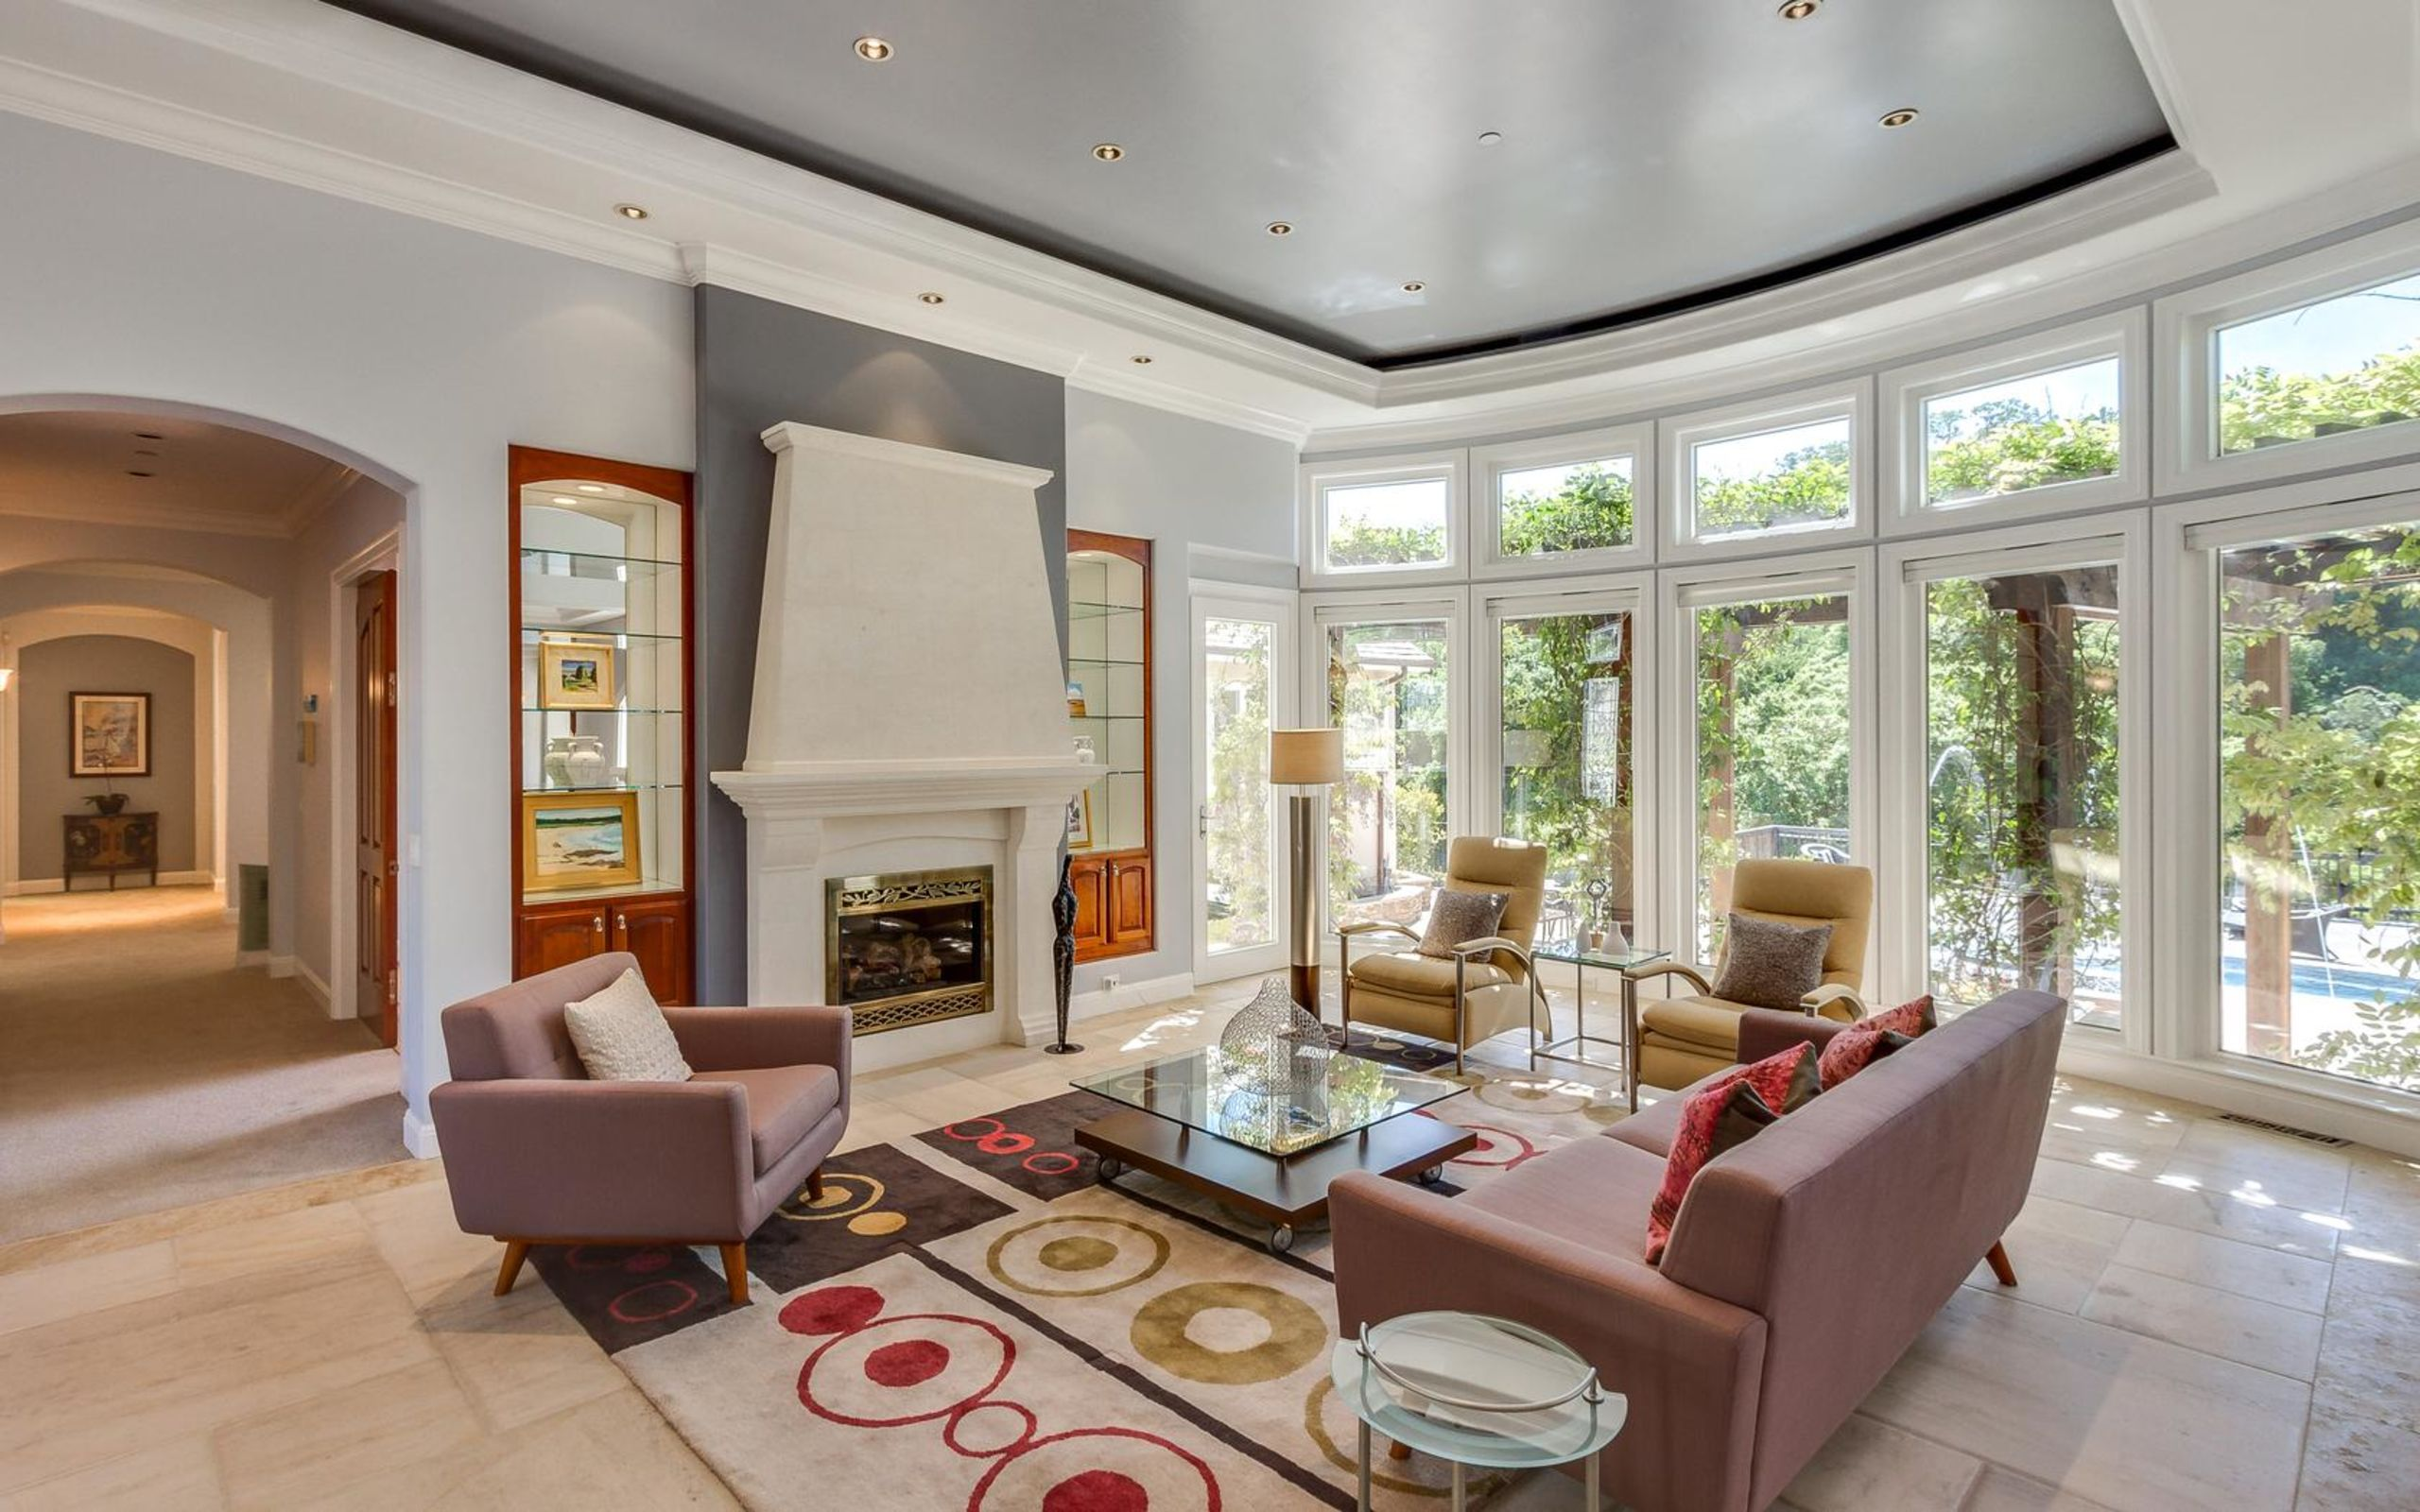 Through complimentary staging of your home, Jim personally ensures your house will receive top dollar.